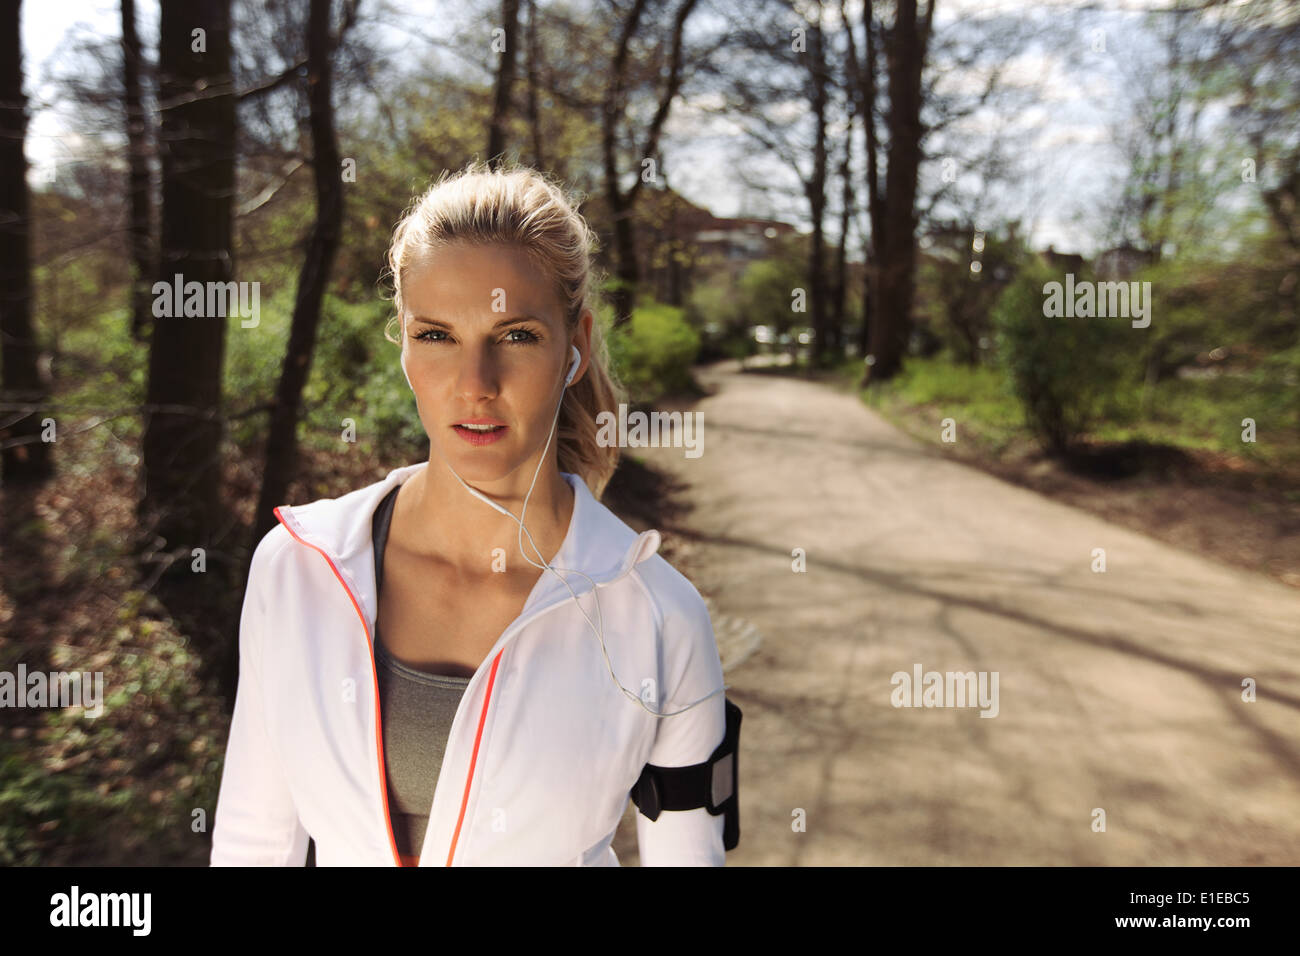 Portrait of pretty young woman in sports clothing wearing earphones while on fitness routine in forest. Young female runner - Stock Image